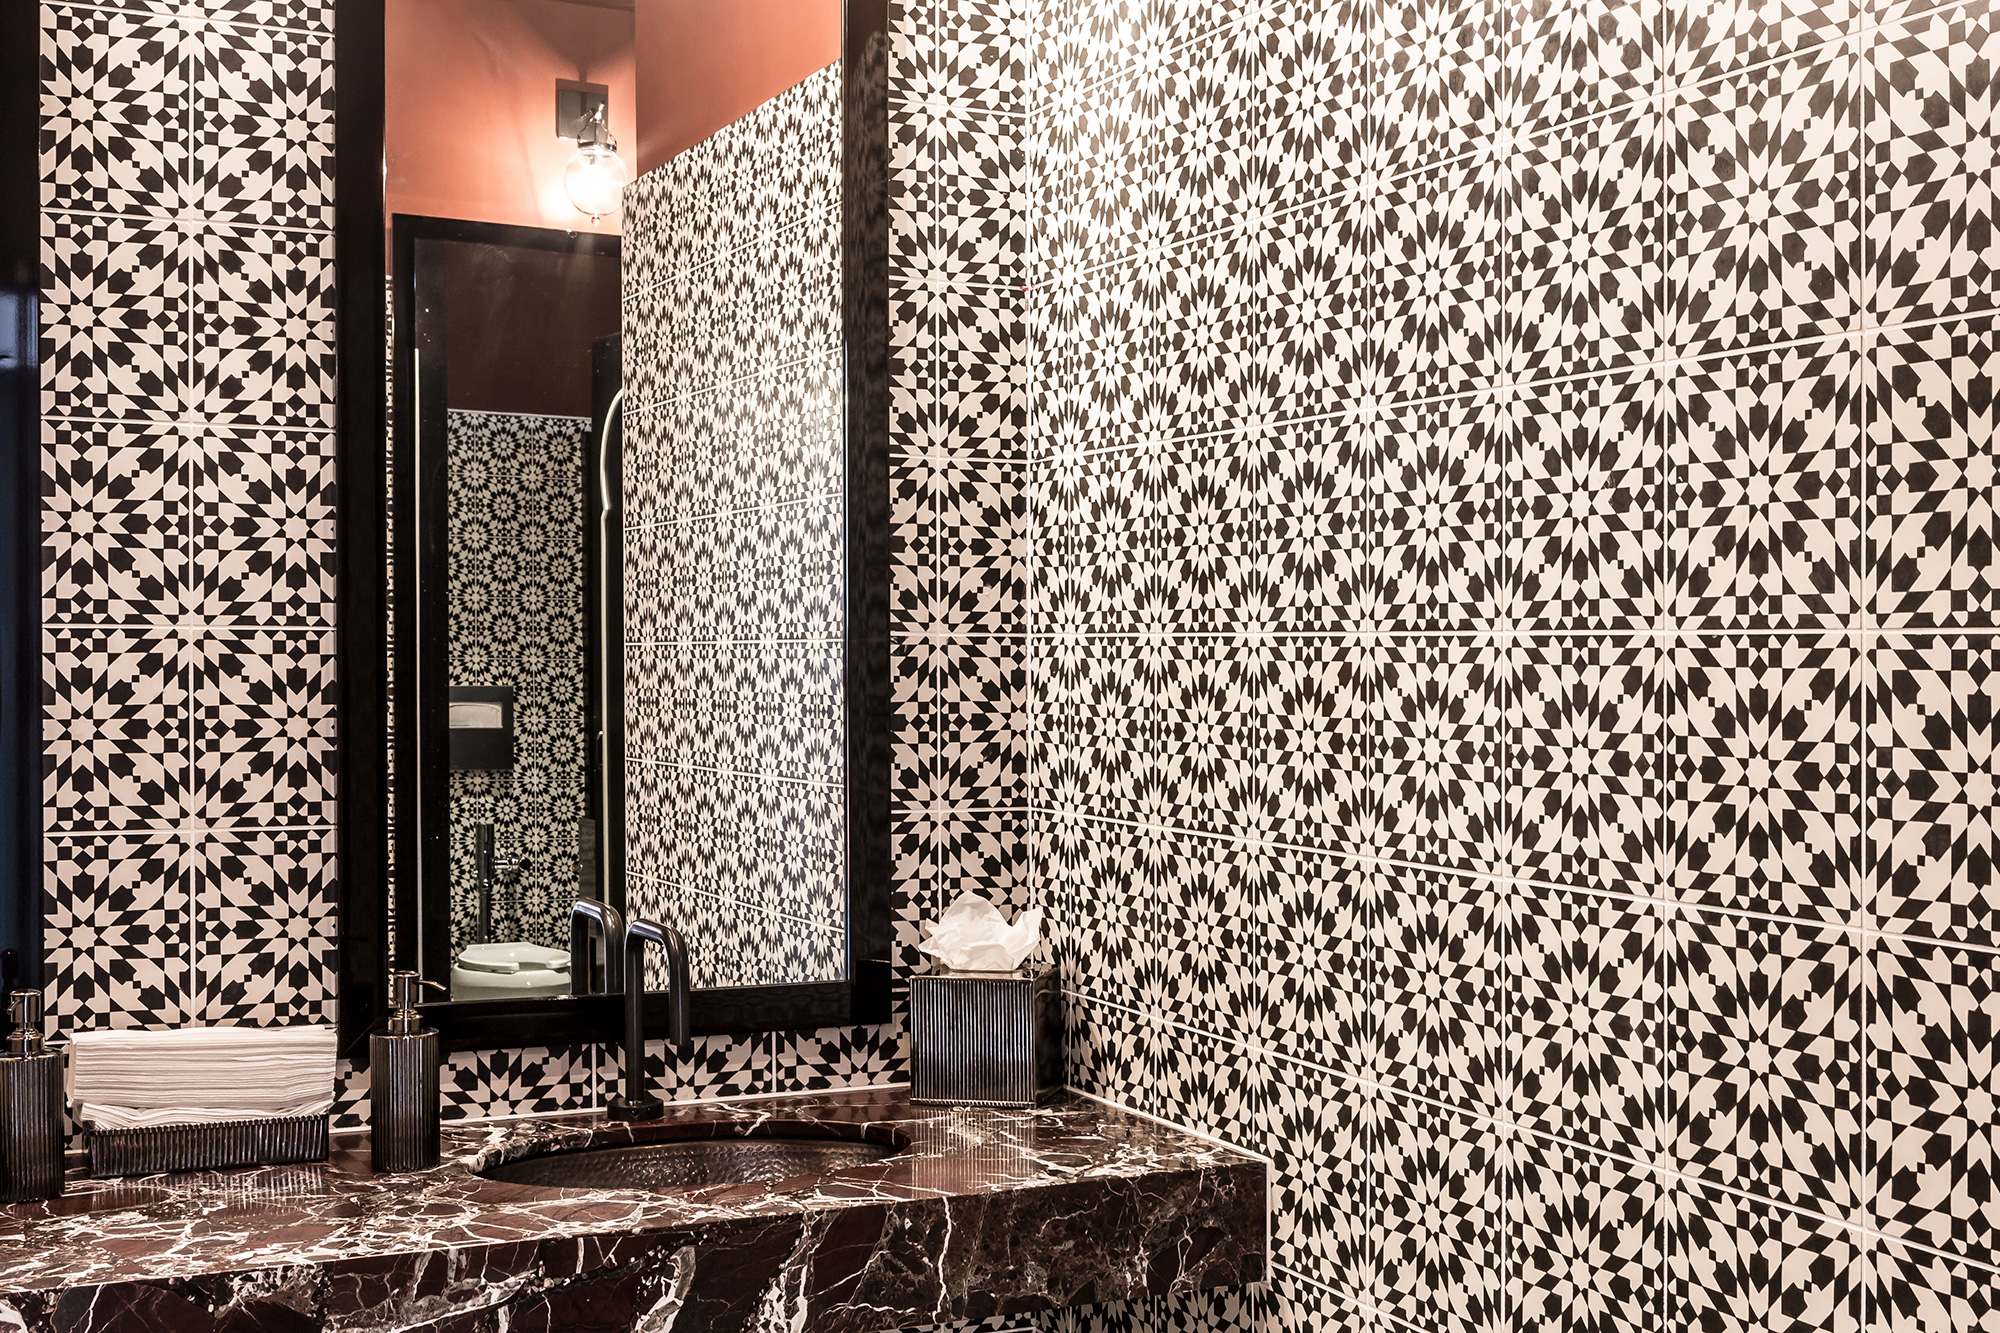 bathroom wall installation at the hotel californian shows versatility and wide range of available indochine patterns artillo spanish cotto concrete tile